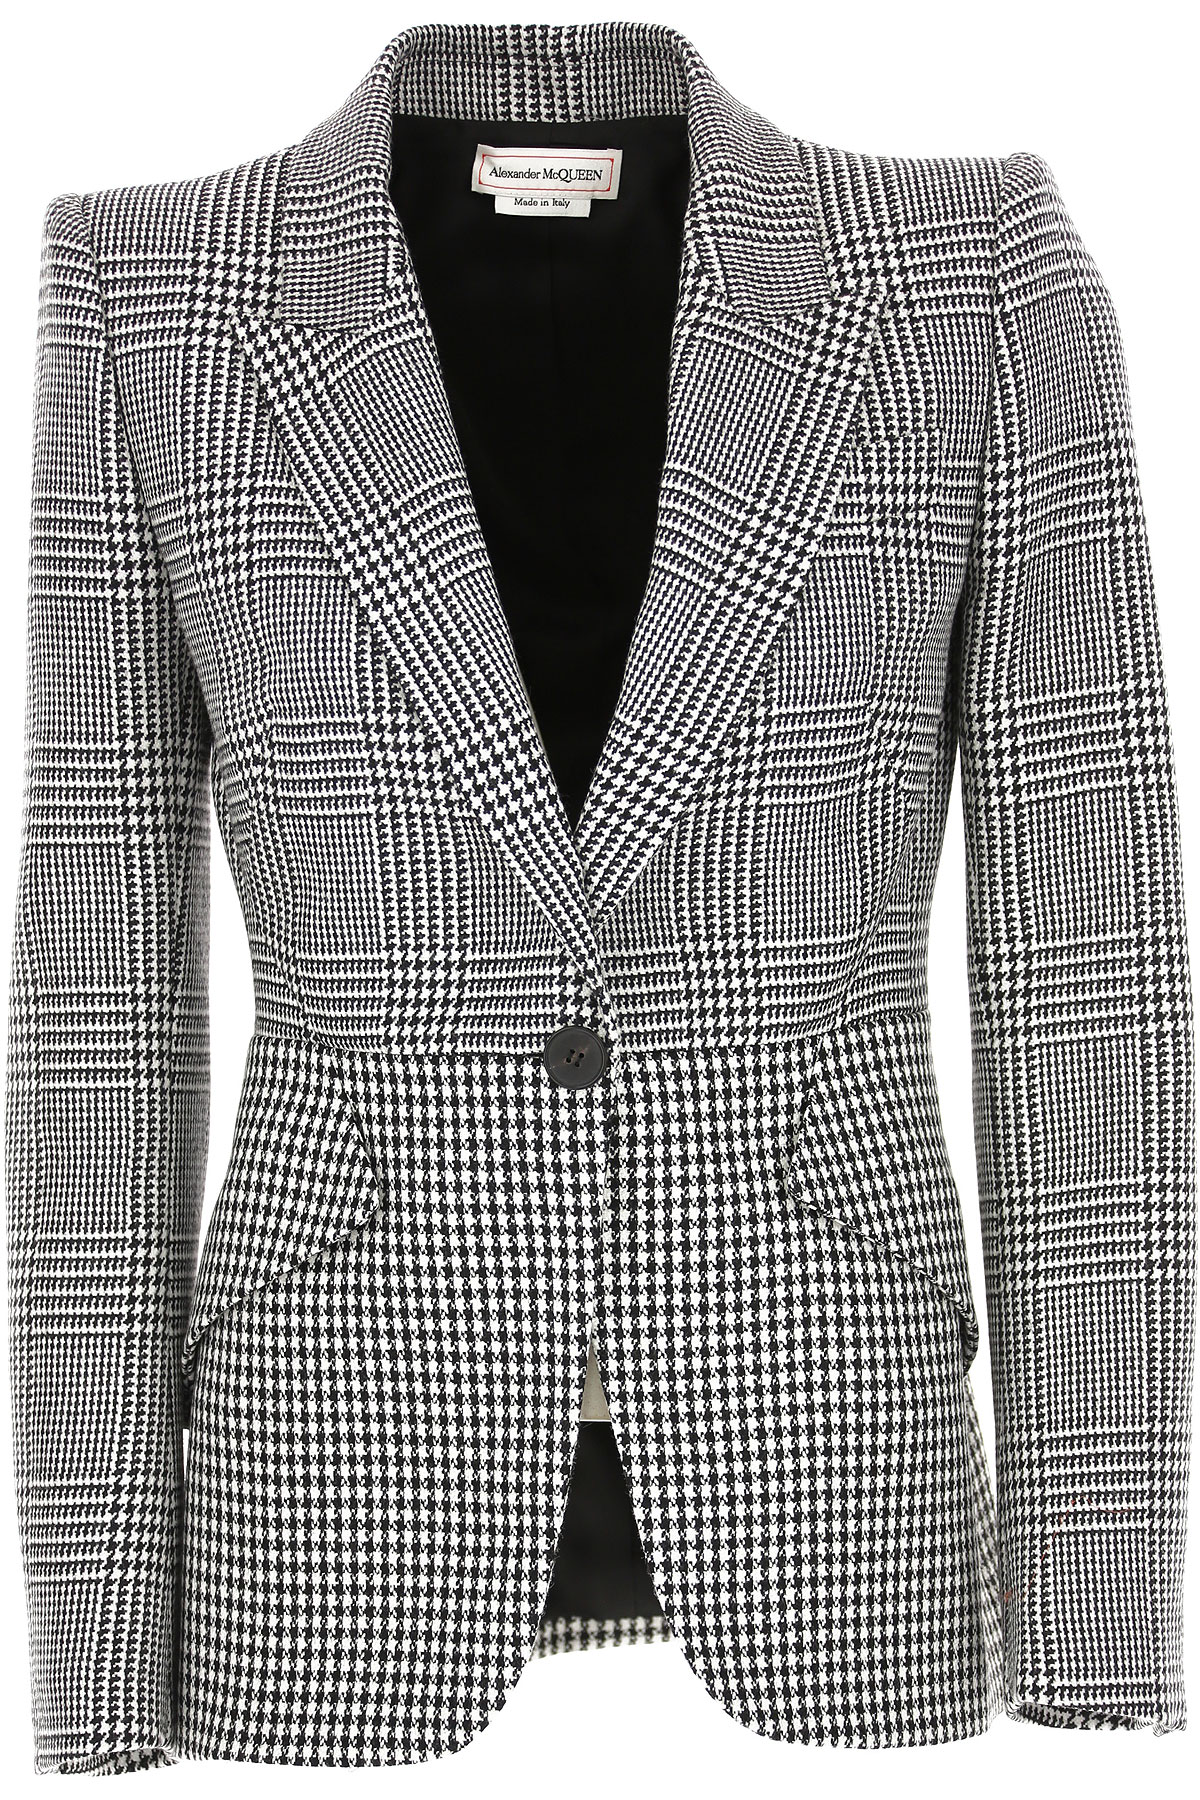 Alexander McQueen Blazer for Women On Sale, White, Wool, 2019, 6 8